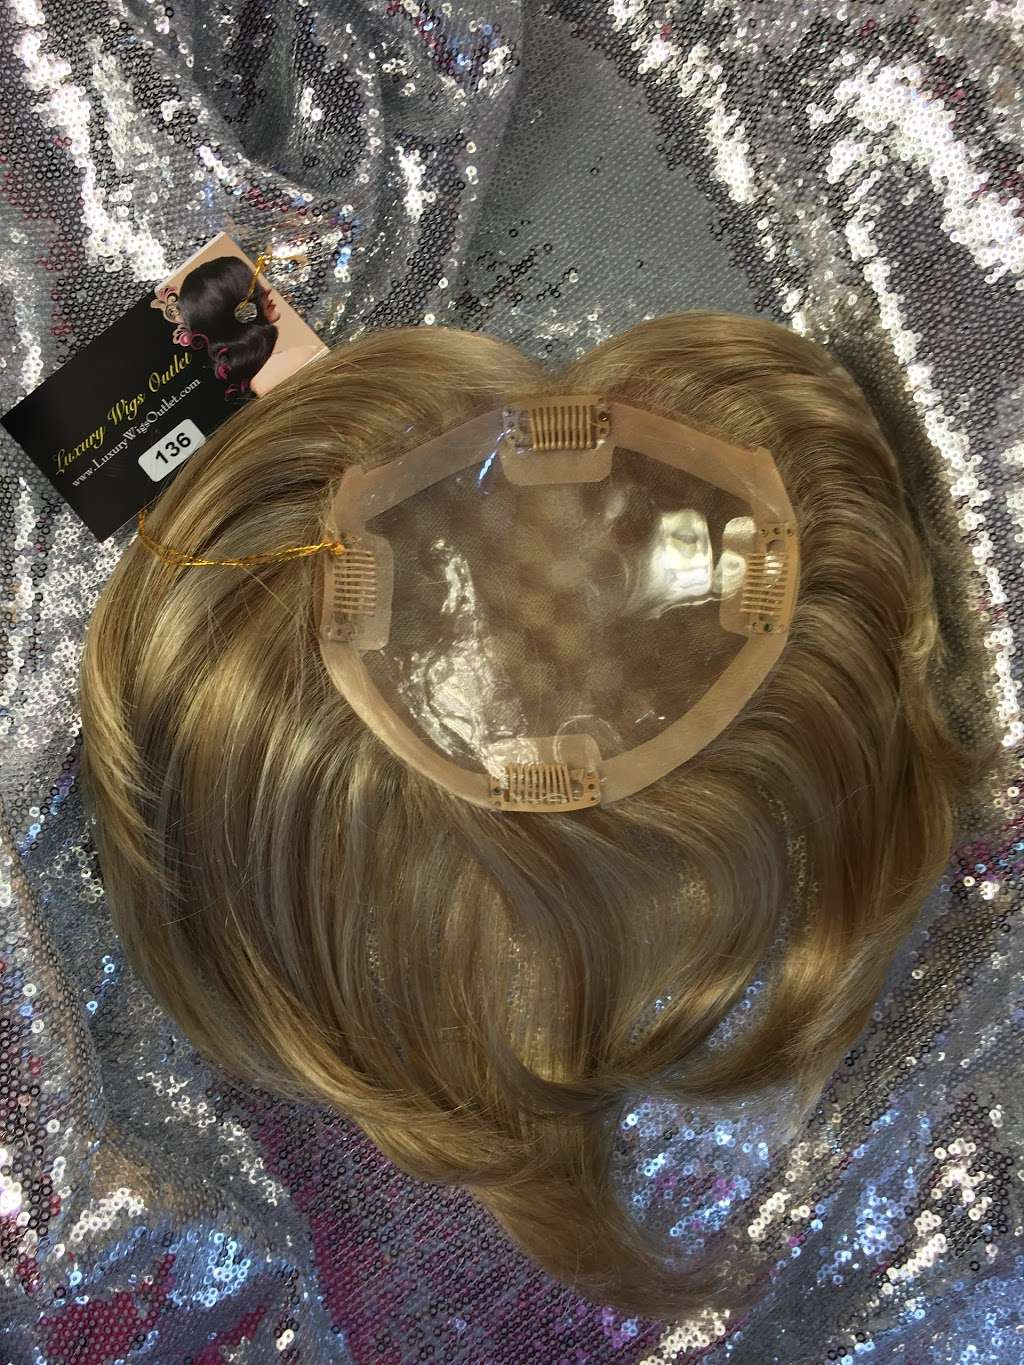 Luxury Wigs Outlet - shoe store  | Photo 4 of 10 | Address: 214 Huyler St, South Hackensack, NJ 07606, USA | Phone: (201) 880-4488